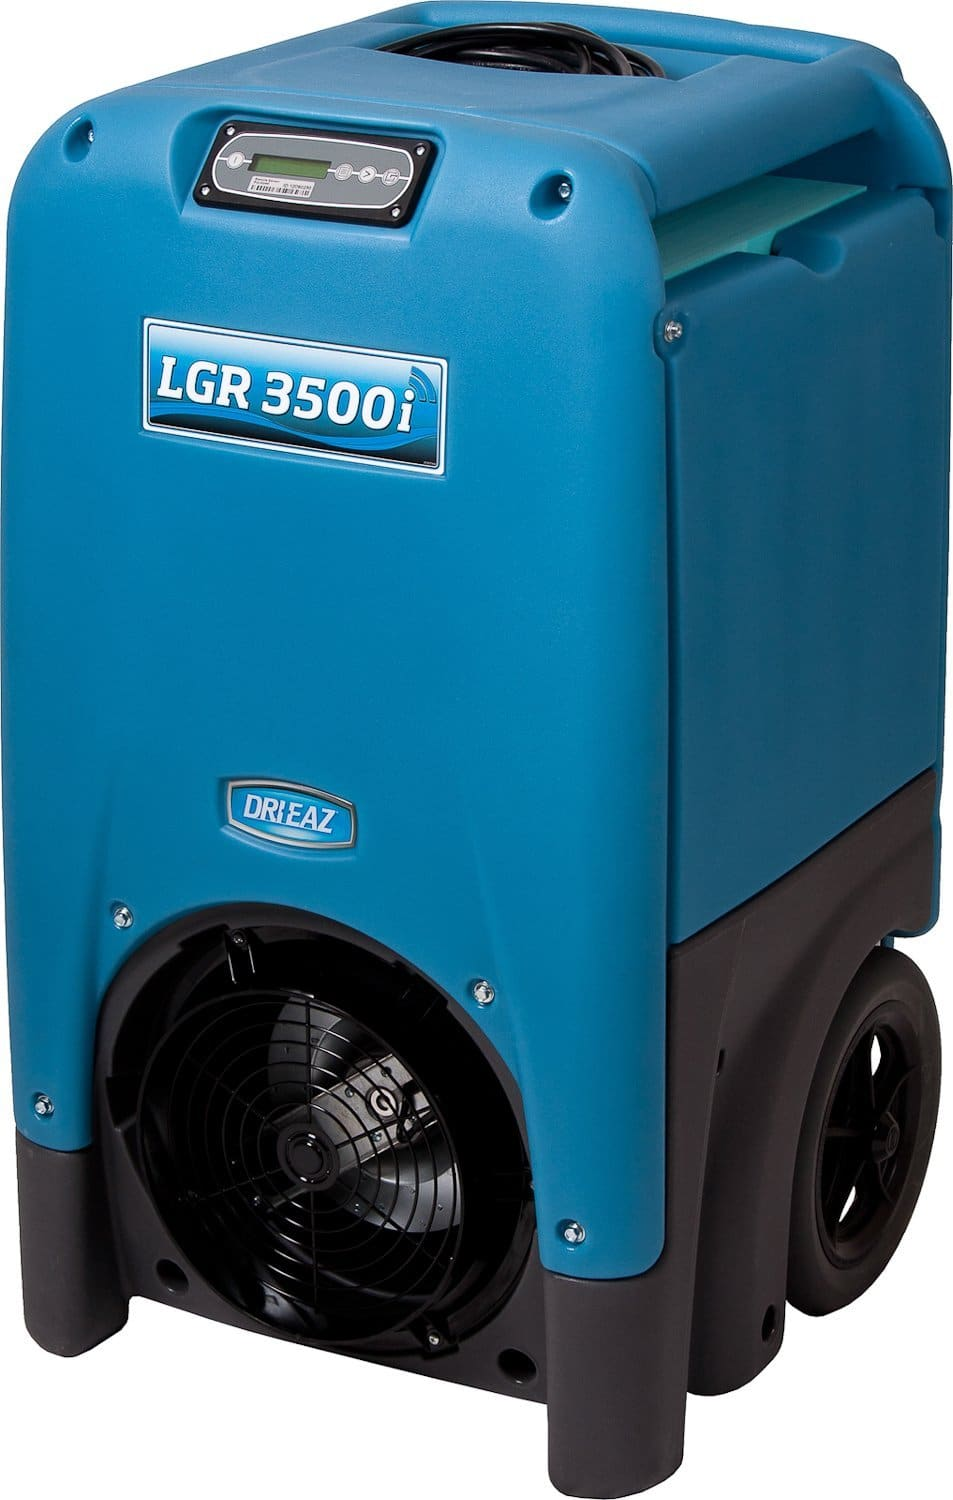 commercial dehumidifier: The right pick for large capacity operation